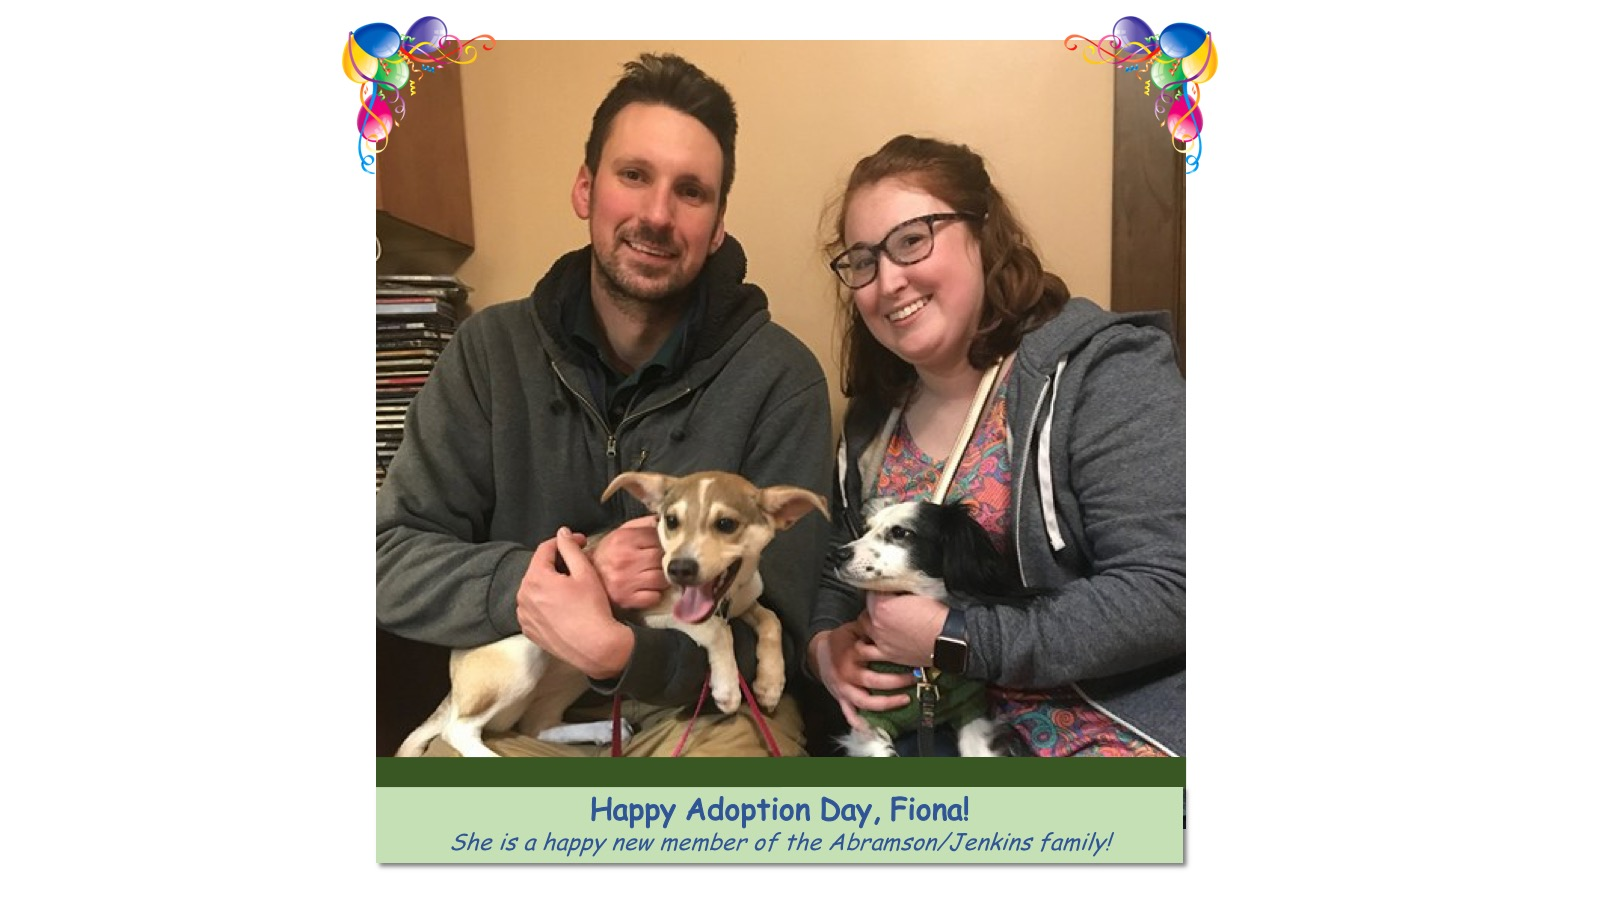 Fiona_Adoption_photo_2018.jpg